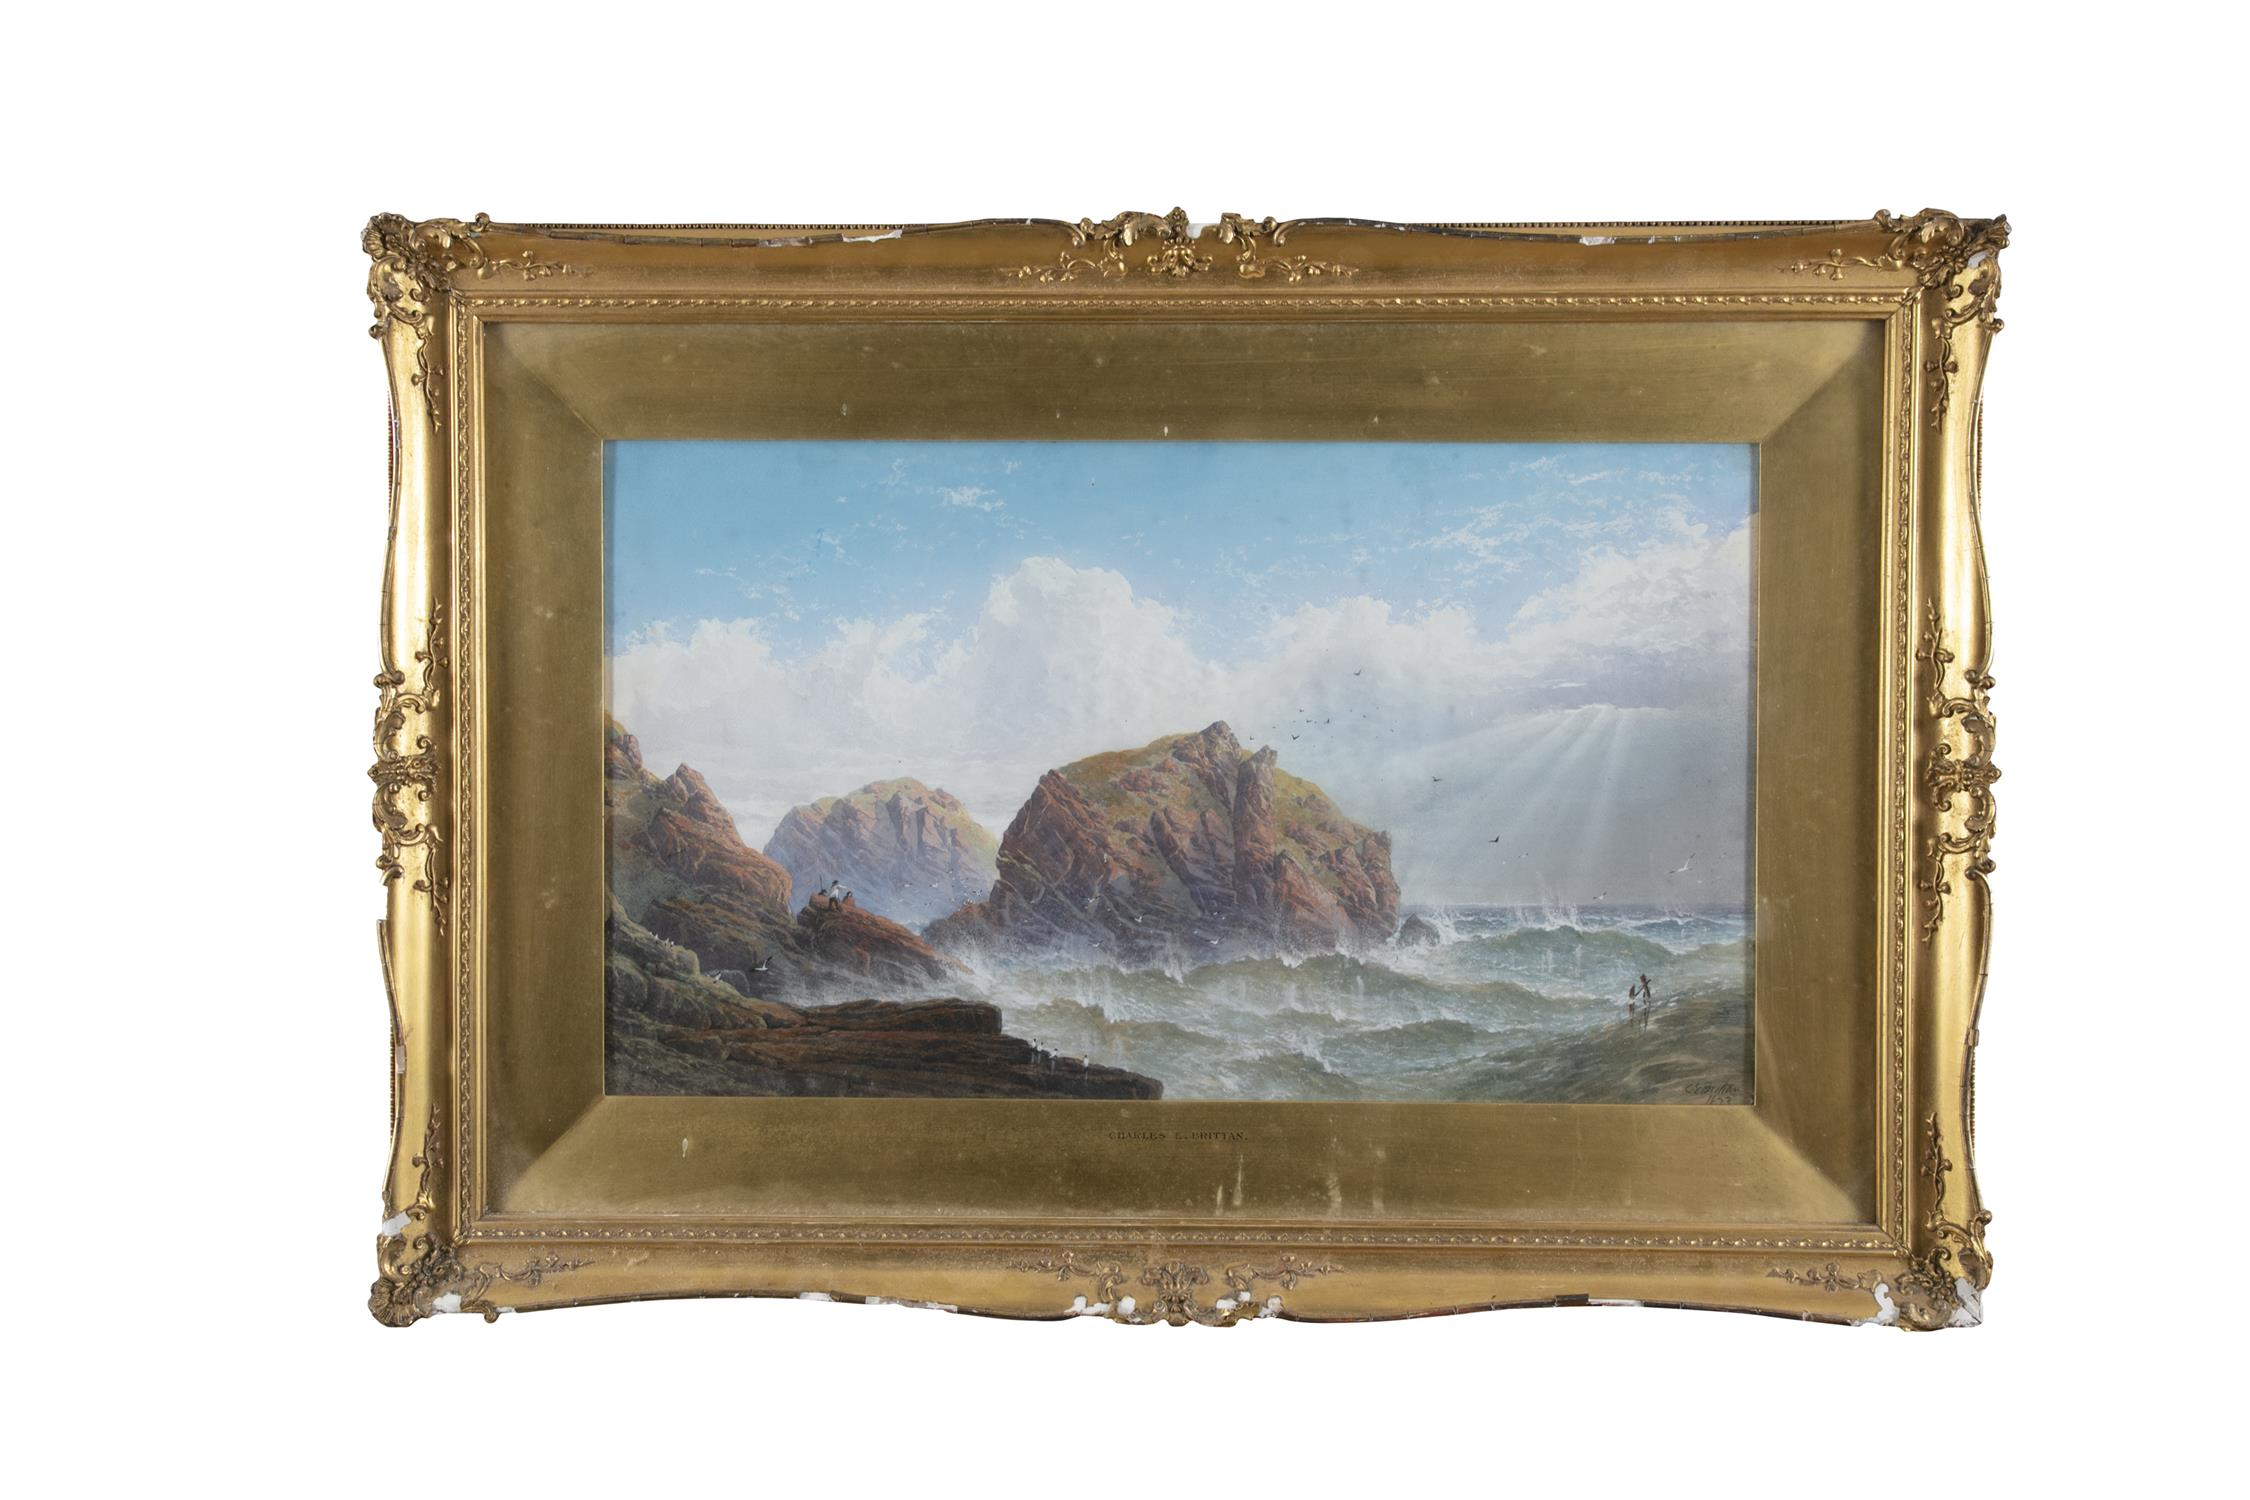 CHARLES E BRITTON (19TH CENTURY) Figures by a rocky coastline Watercolour, 33 x 59cm Signed and